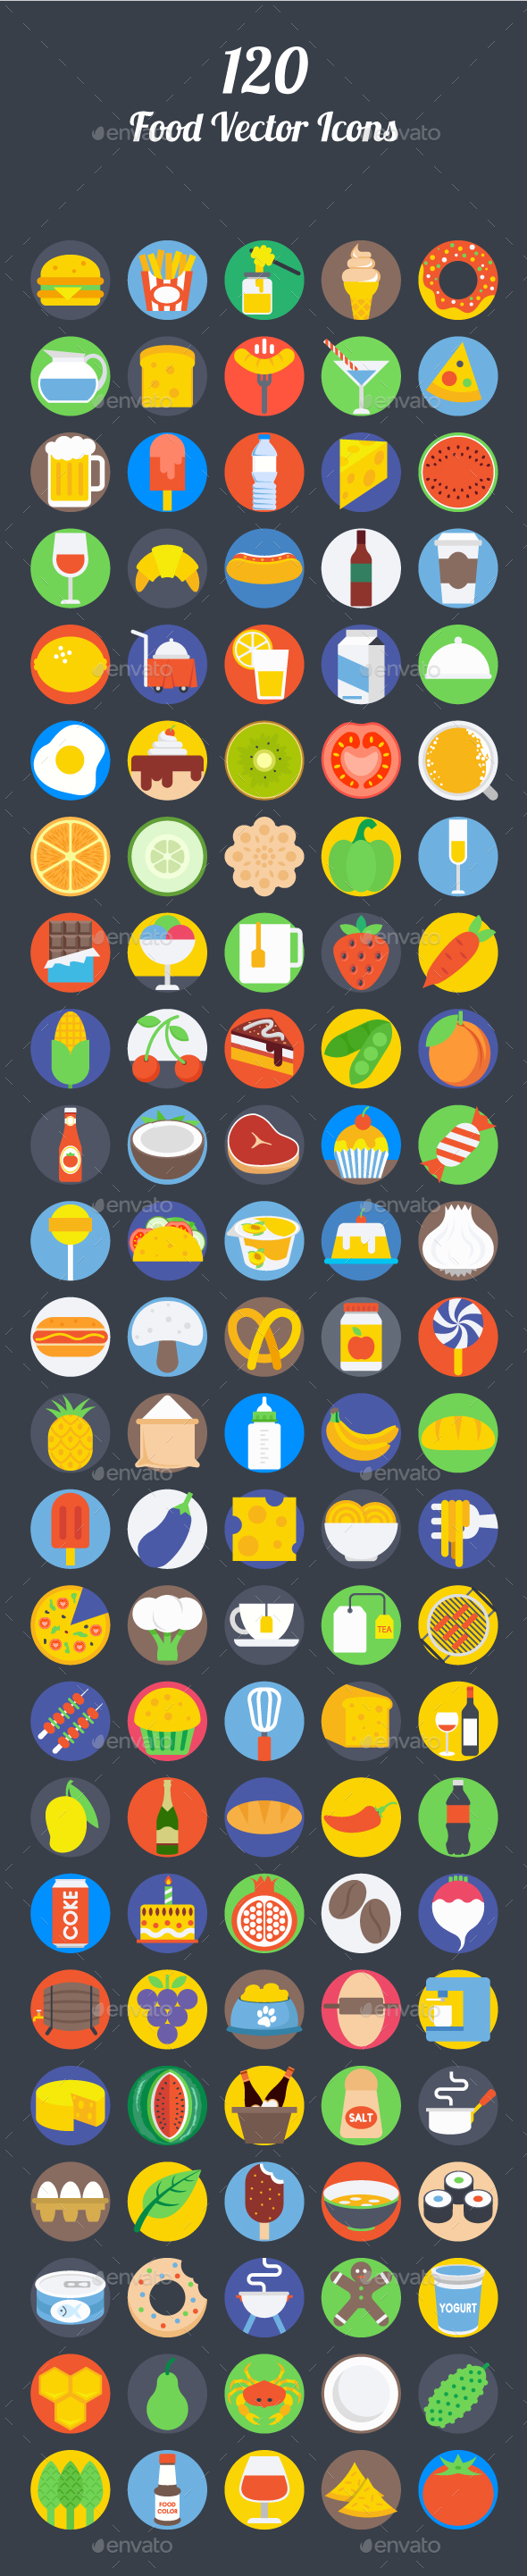 120 Food Vector Icons - Icons